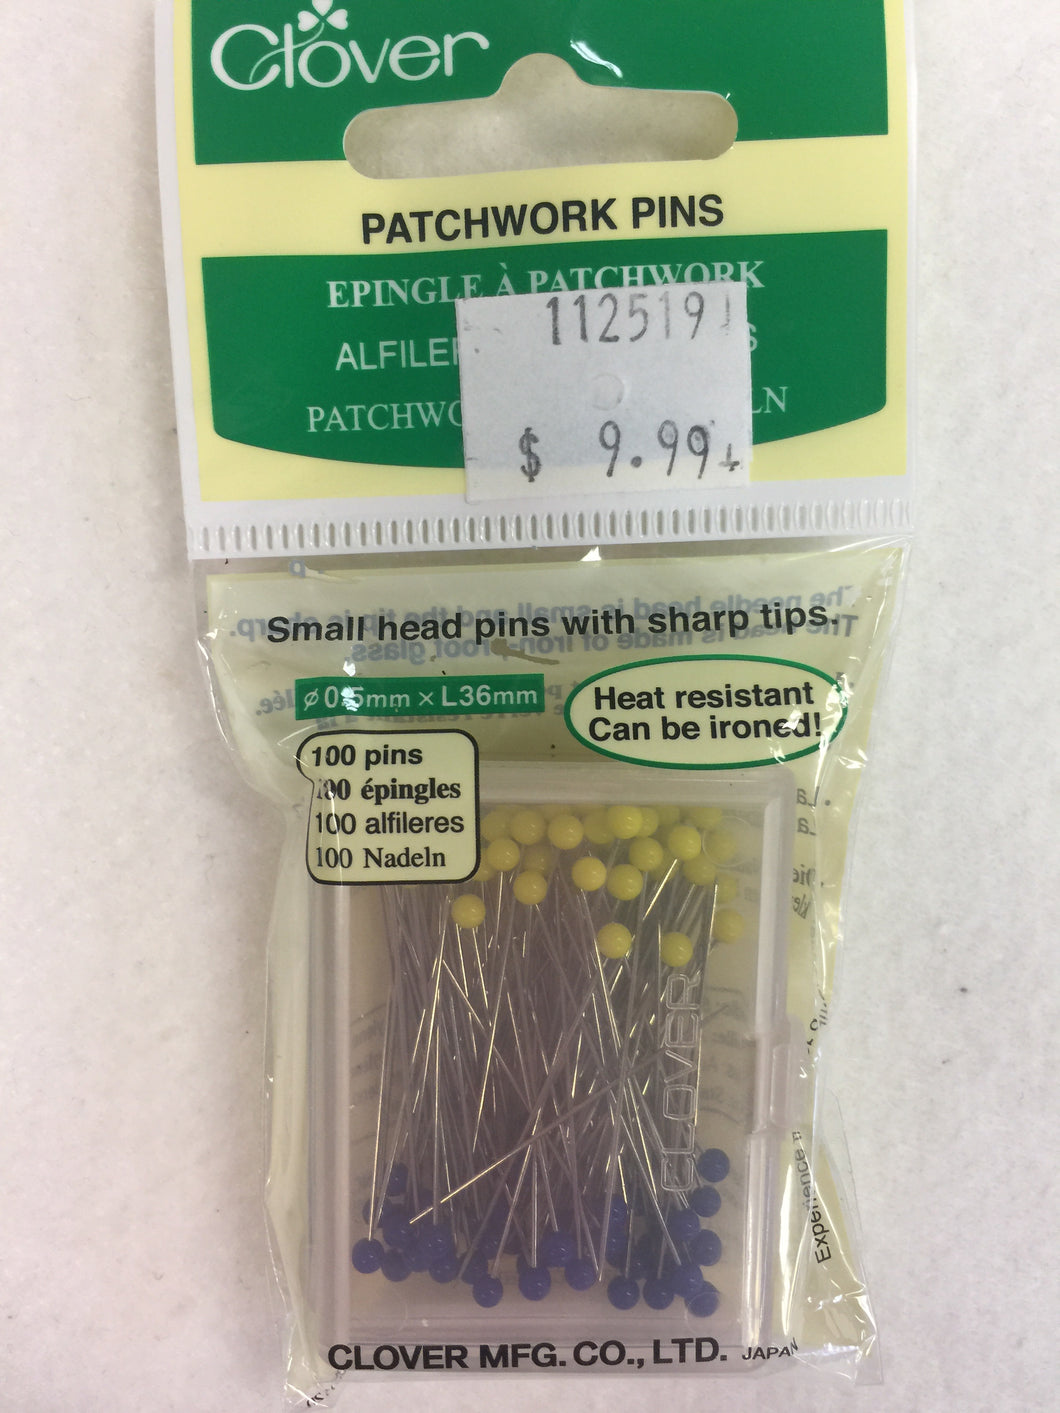 Patchwork Pins by Clover